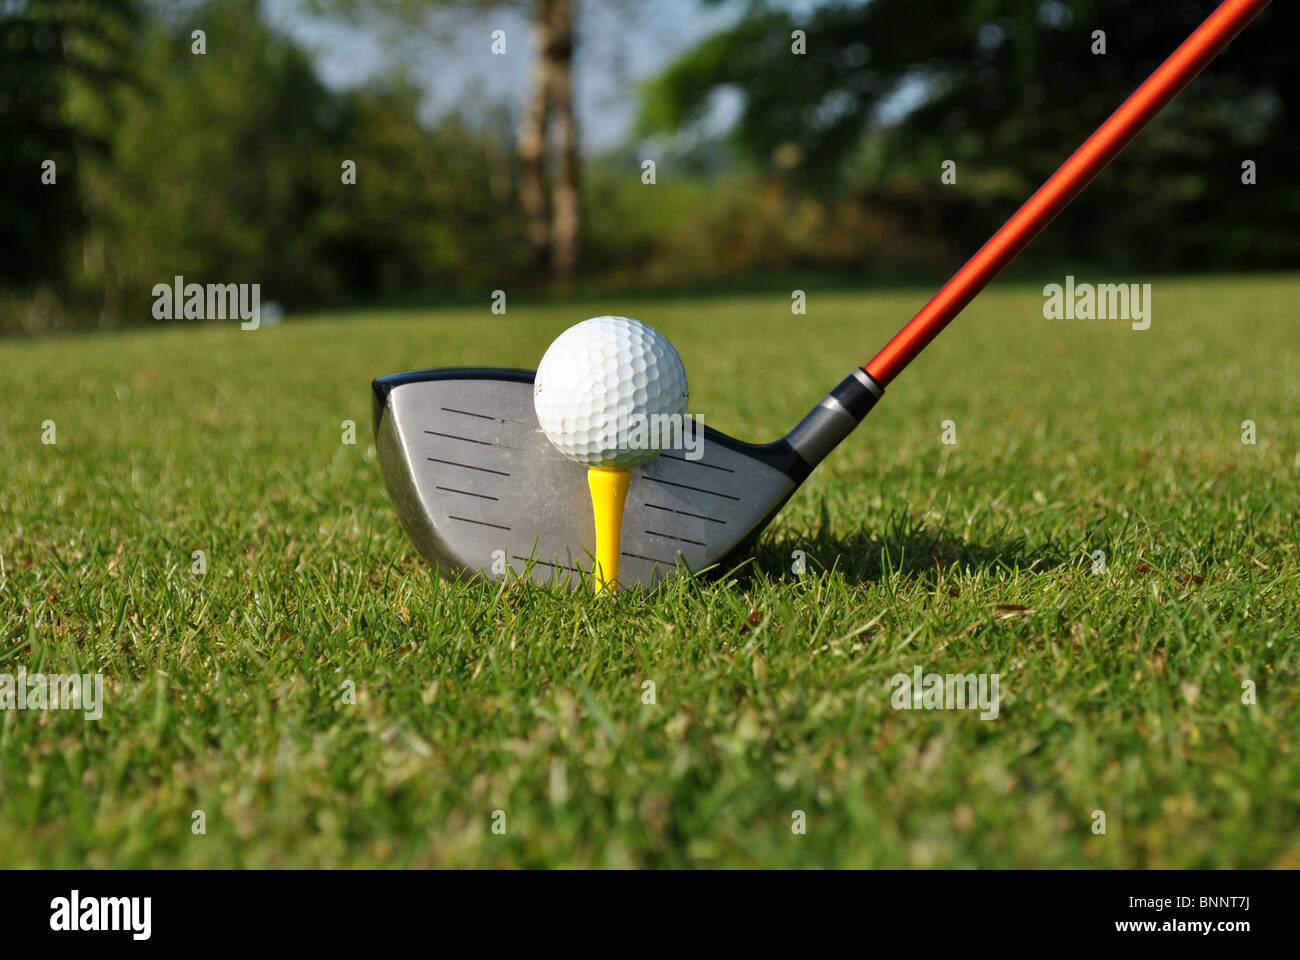 driver yellow tee and white golf ball - Stock Image